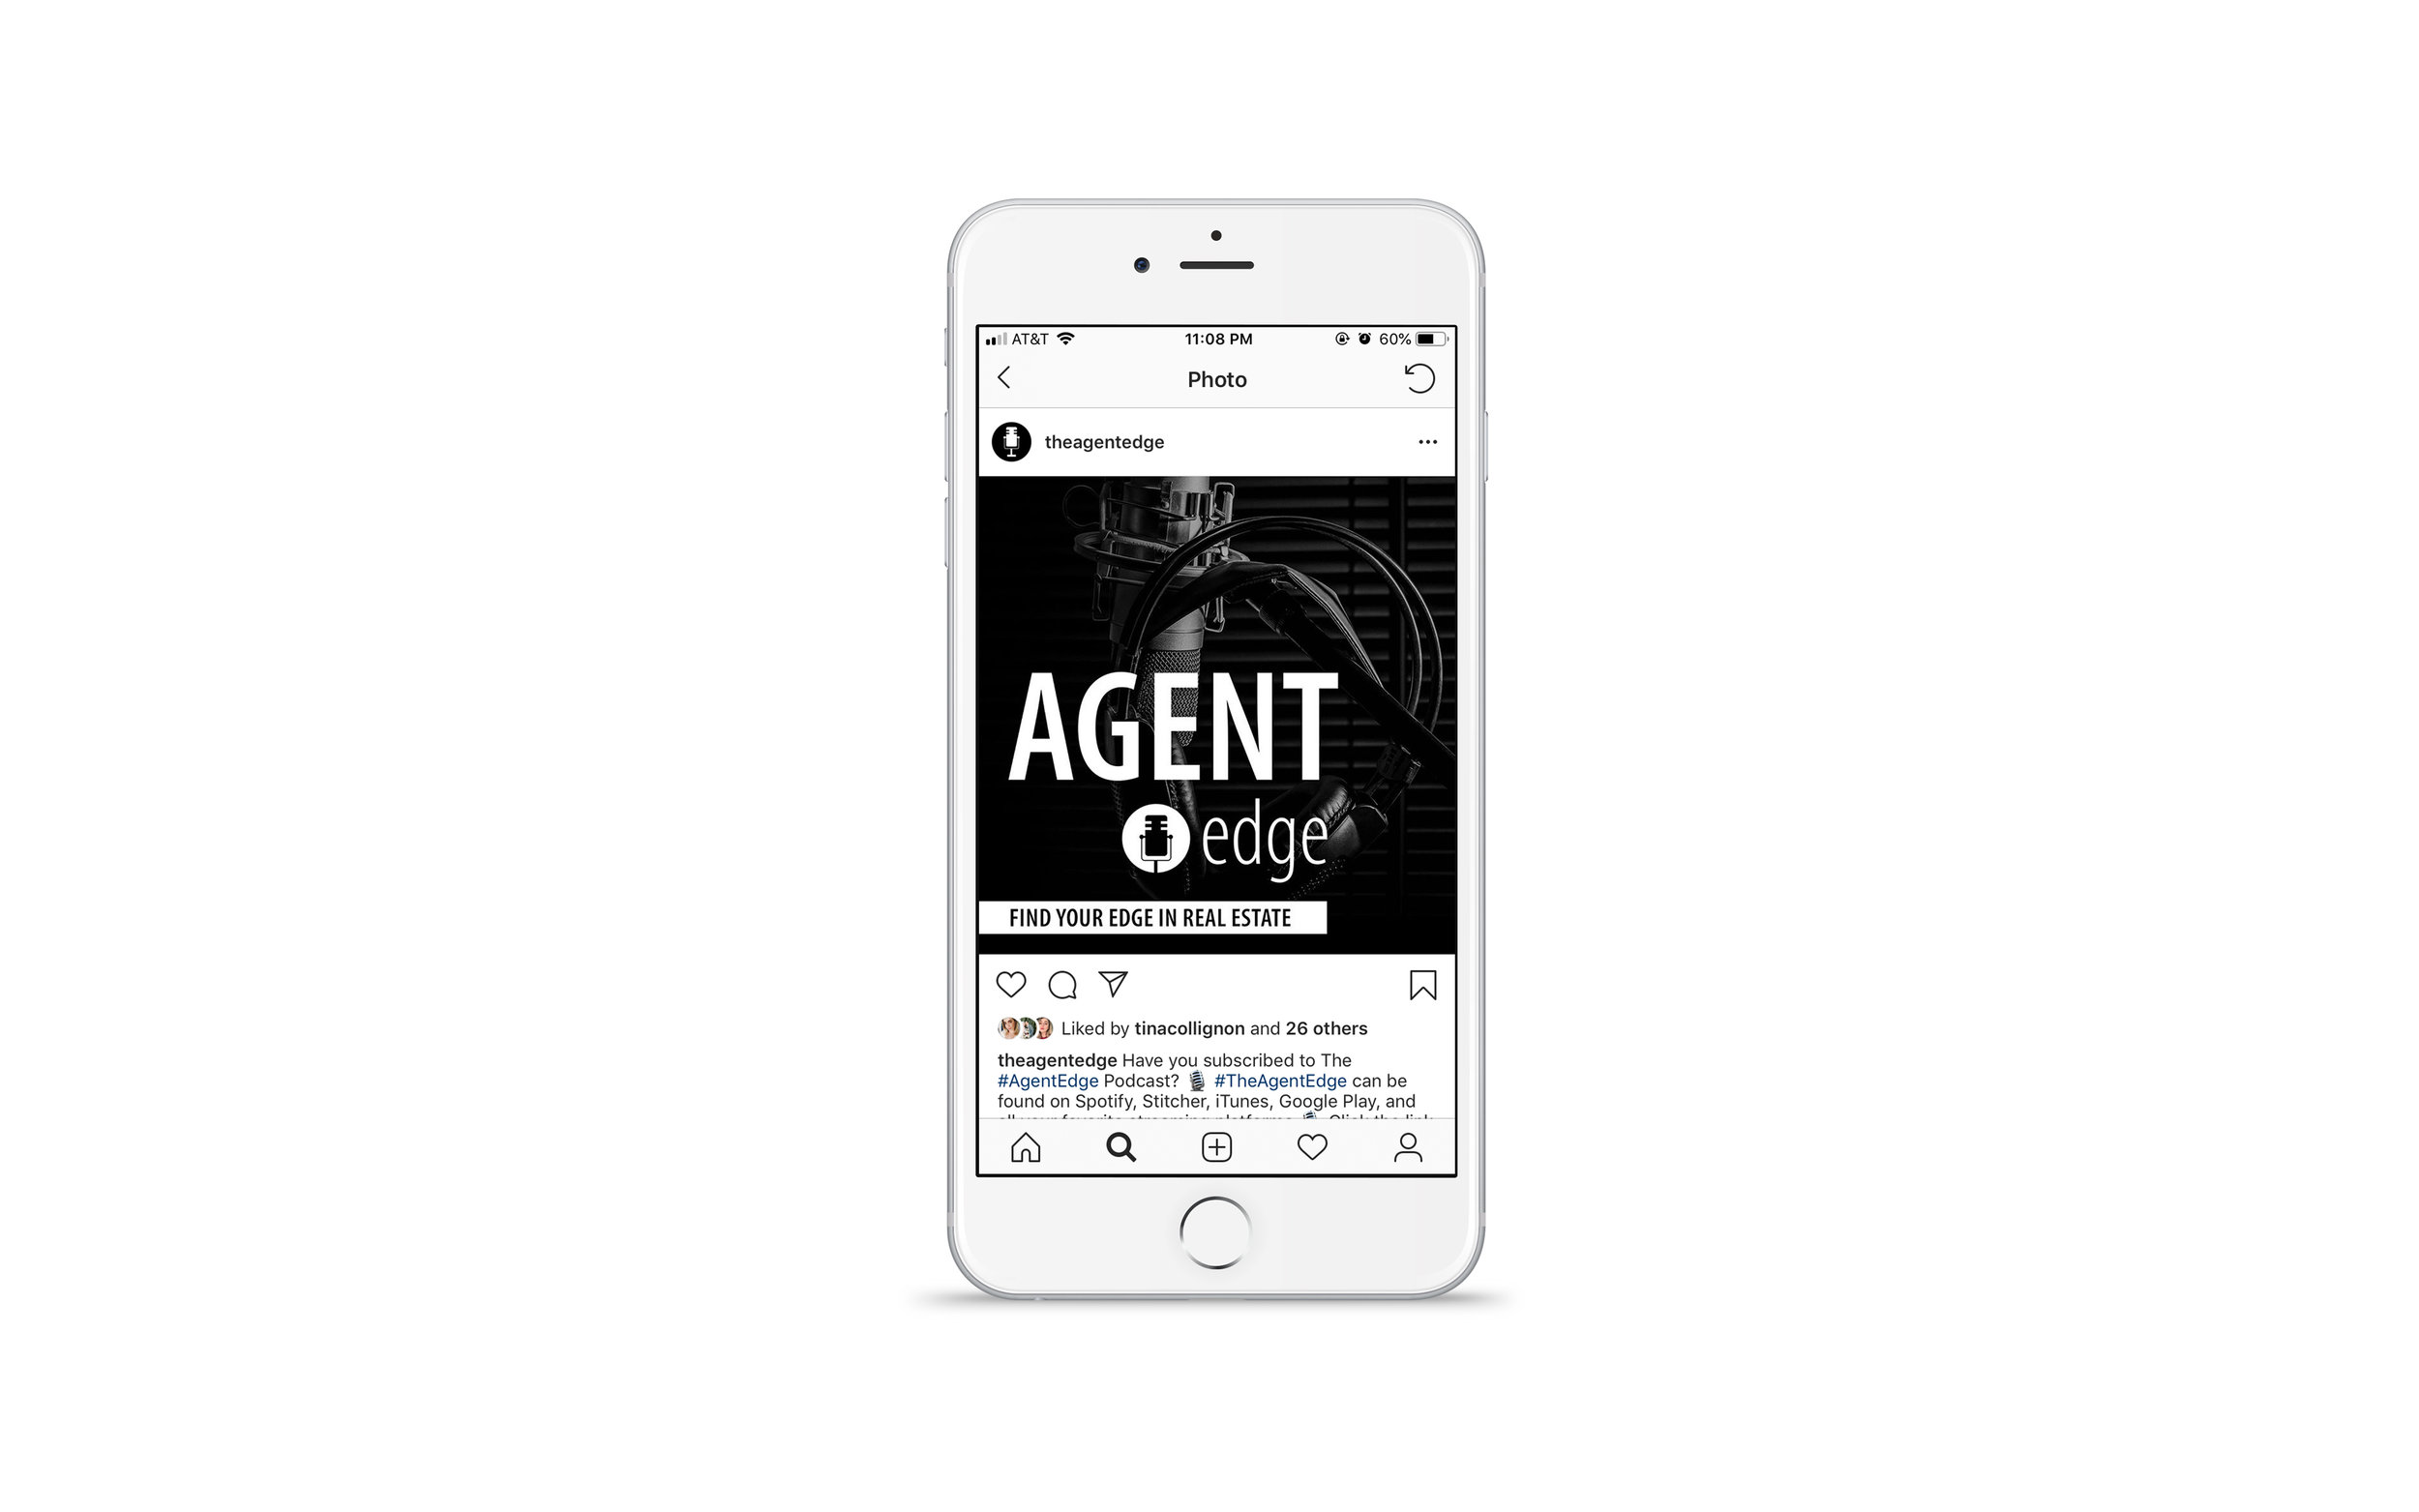 iPhone-mockup_agent-edge-2.jpg